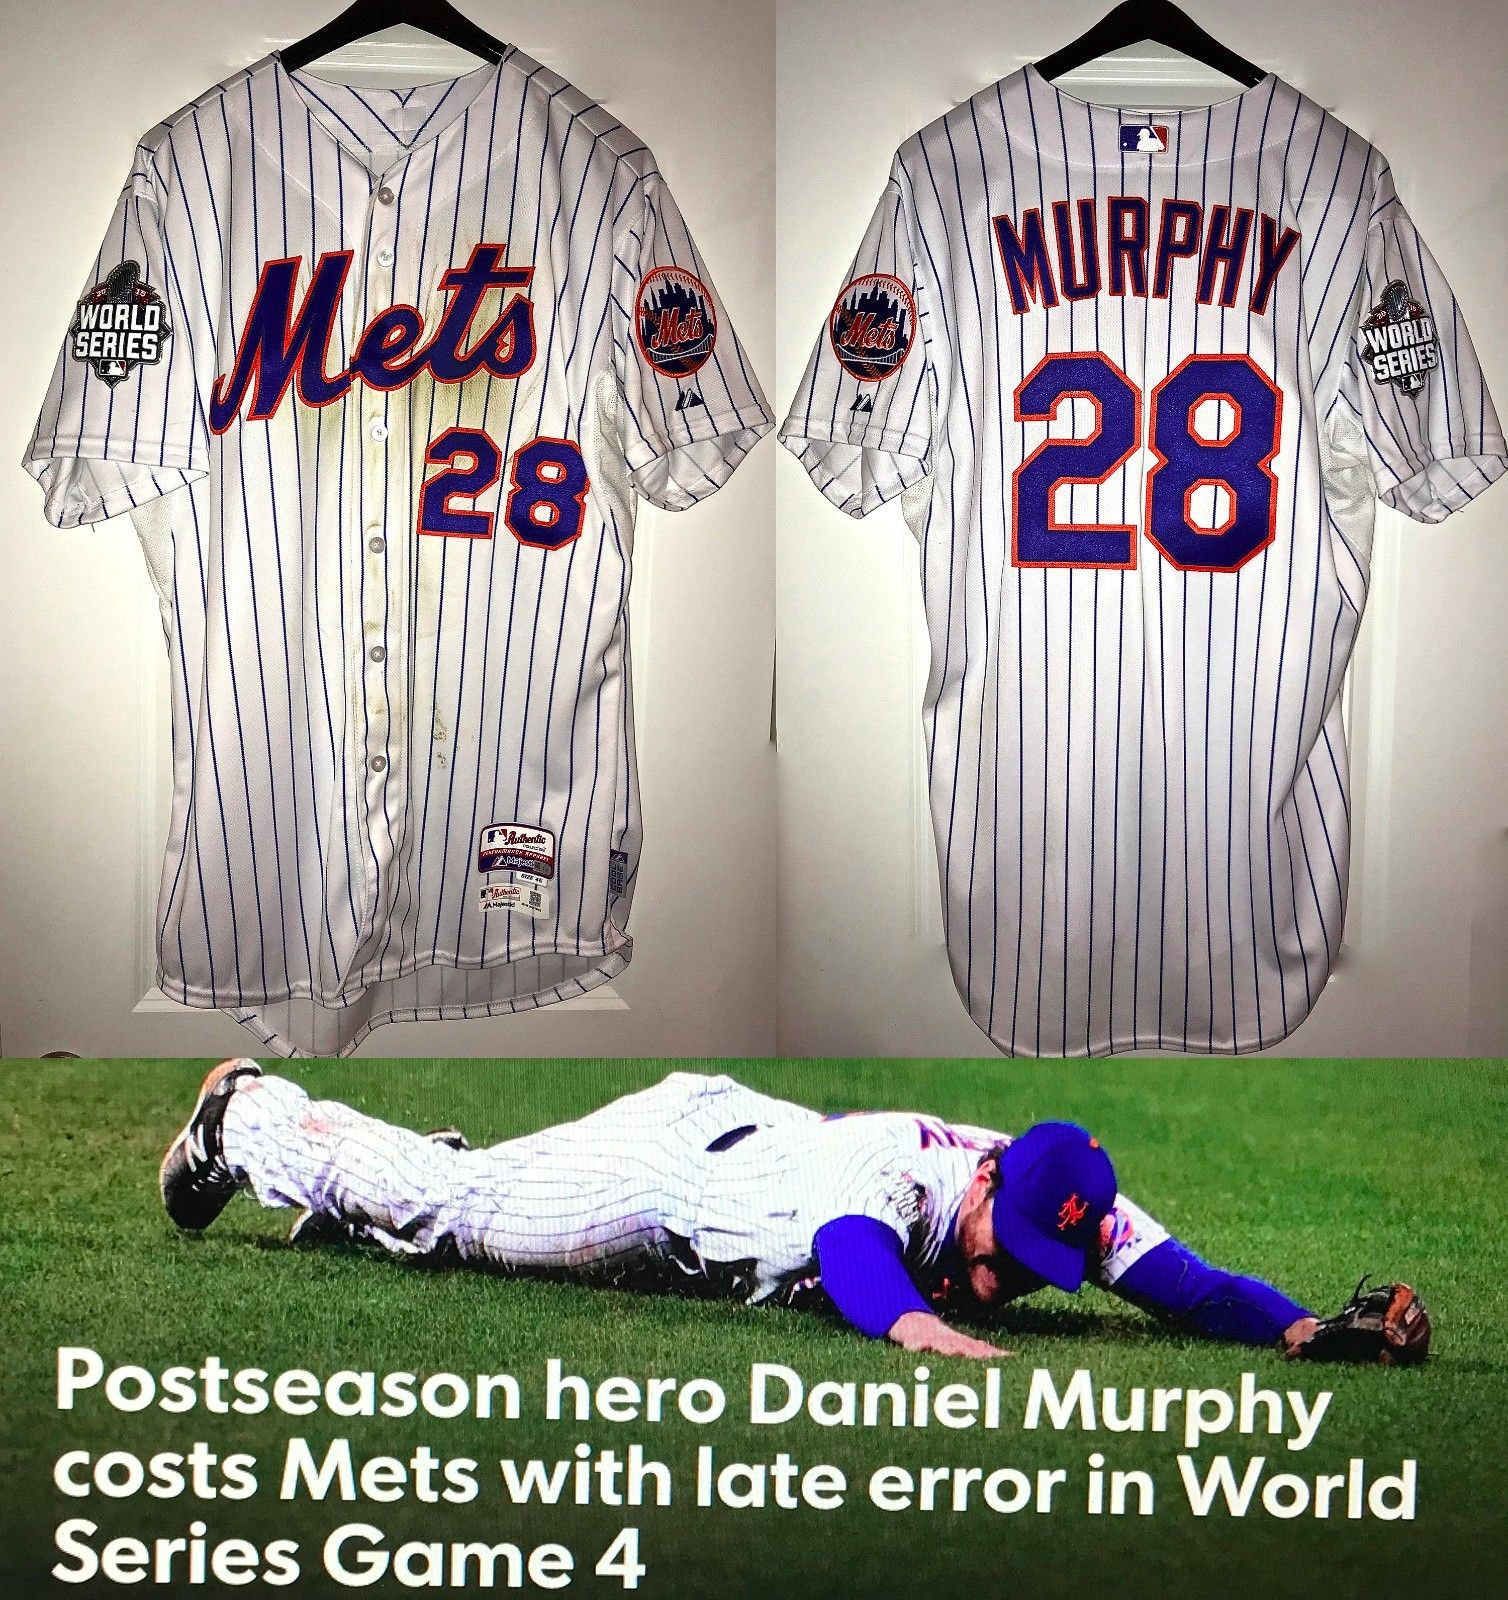 TheMediagoon com: What a deal on this Mets Daniel Murphy